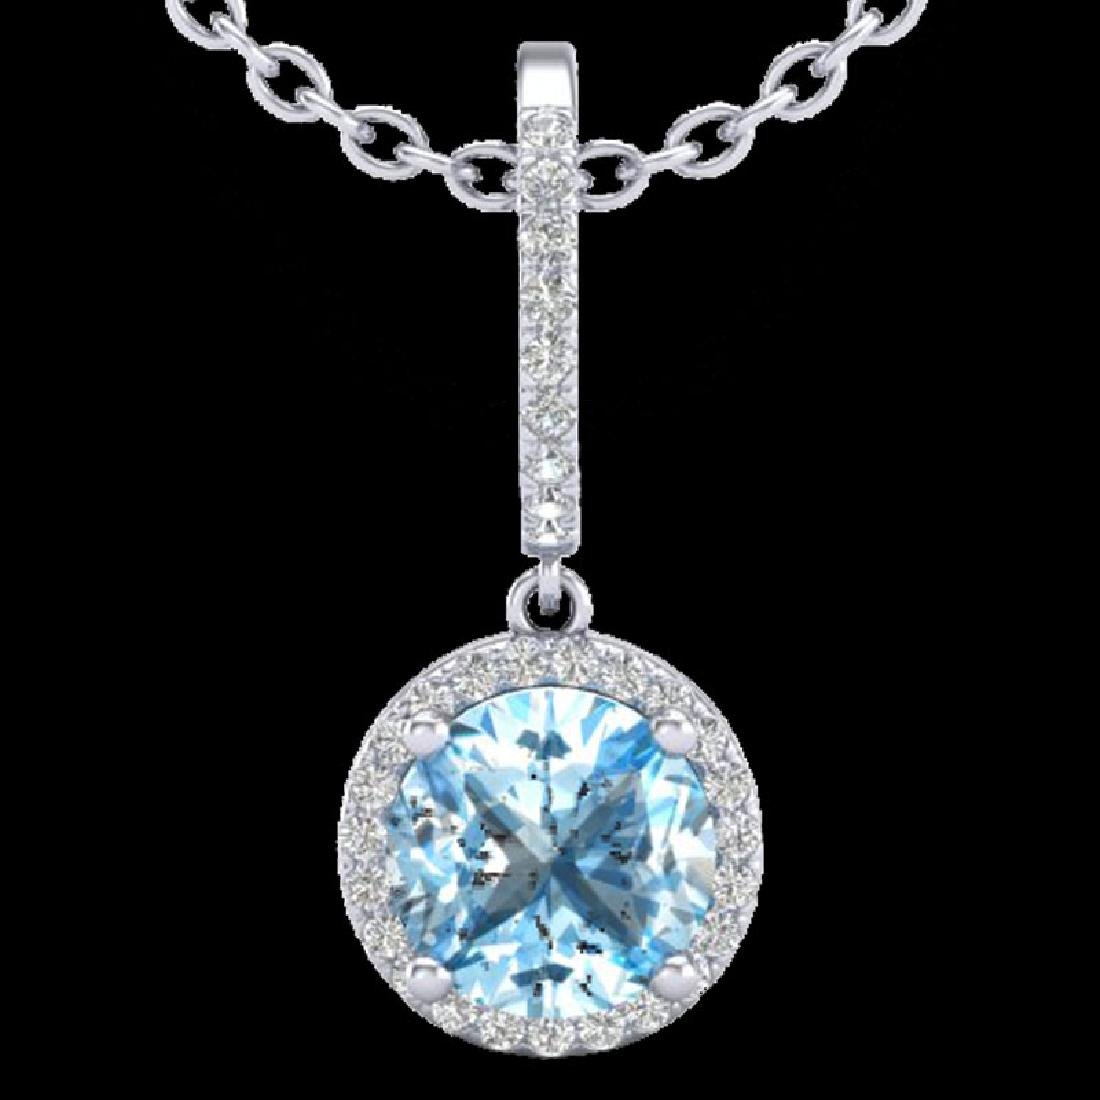 2.75 CTW Sky Blue Topaz & Micro Pave VS/SI Diamond - 2